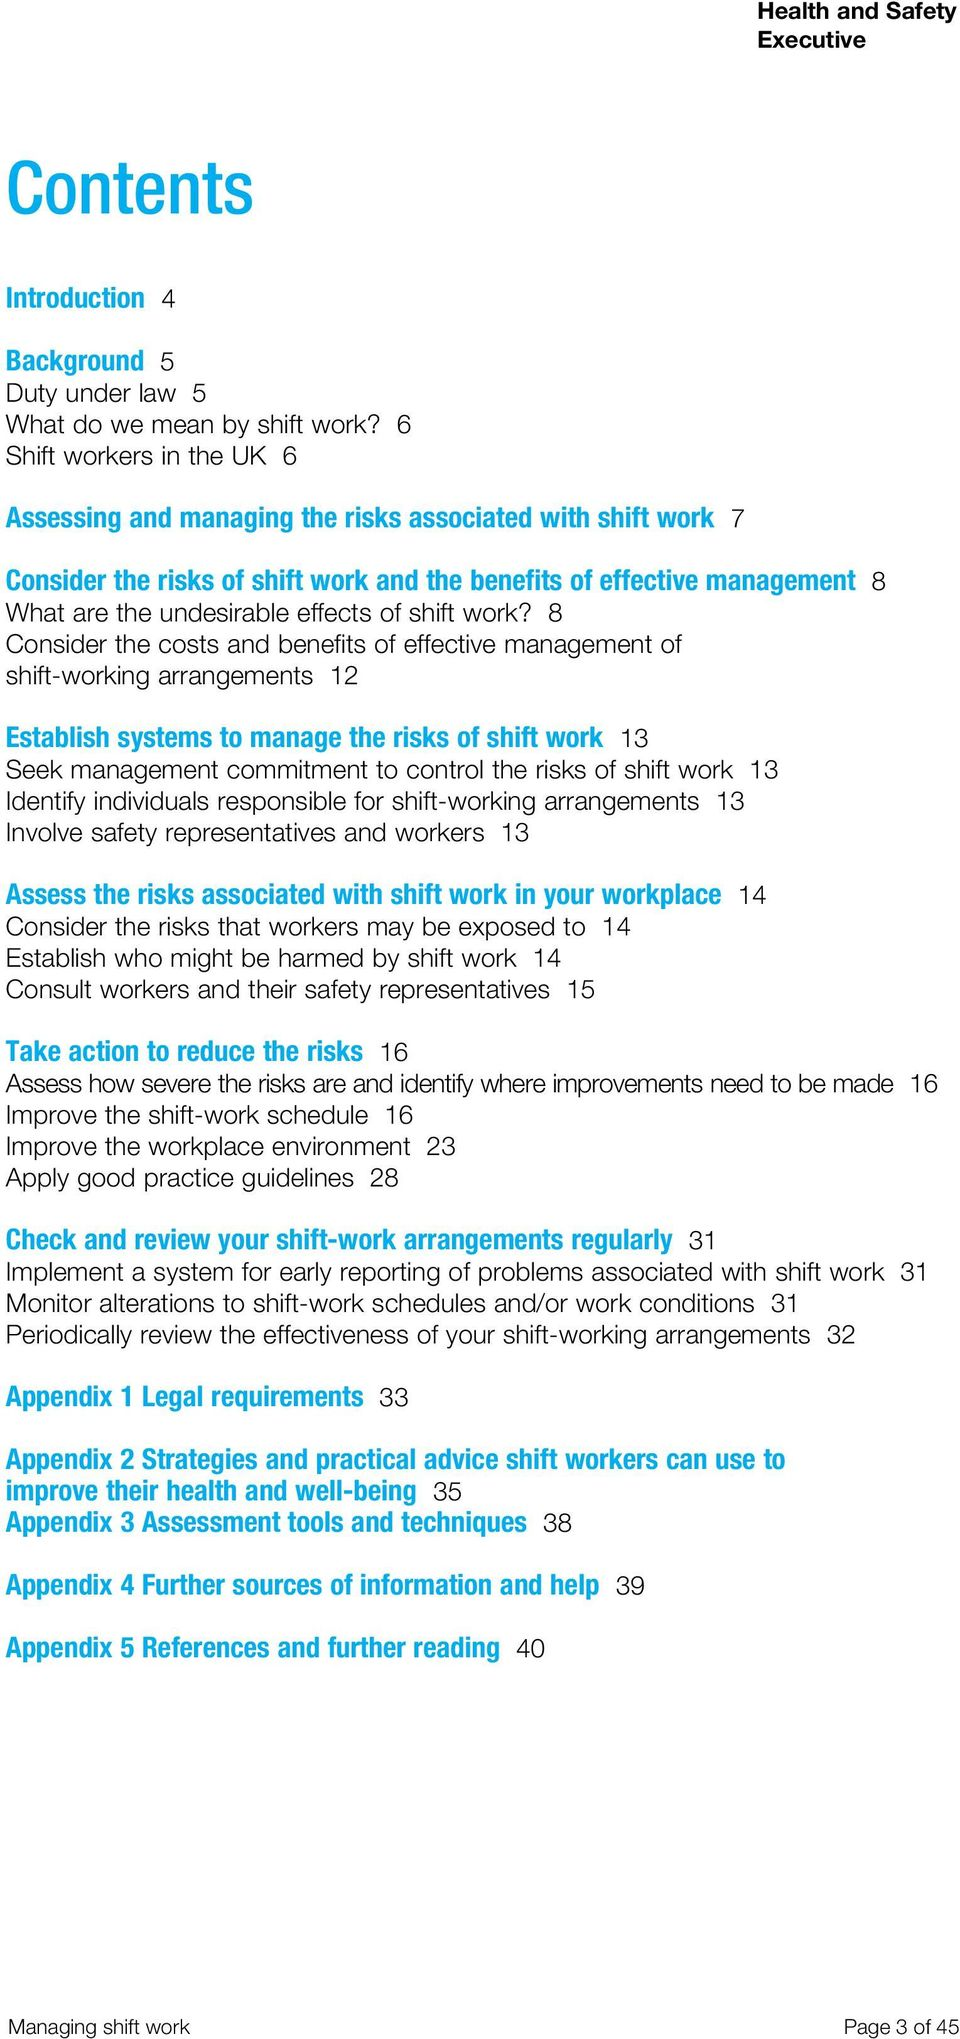 work? 8 Cosider the costs ad beefits of effective maagemet of shift-workig arragemets 12 Establish systems to maage the risks of shift work 13 Seek maagemet commitmet to cotrol the risks of shift